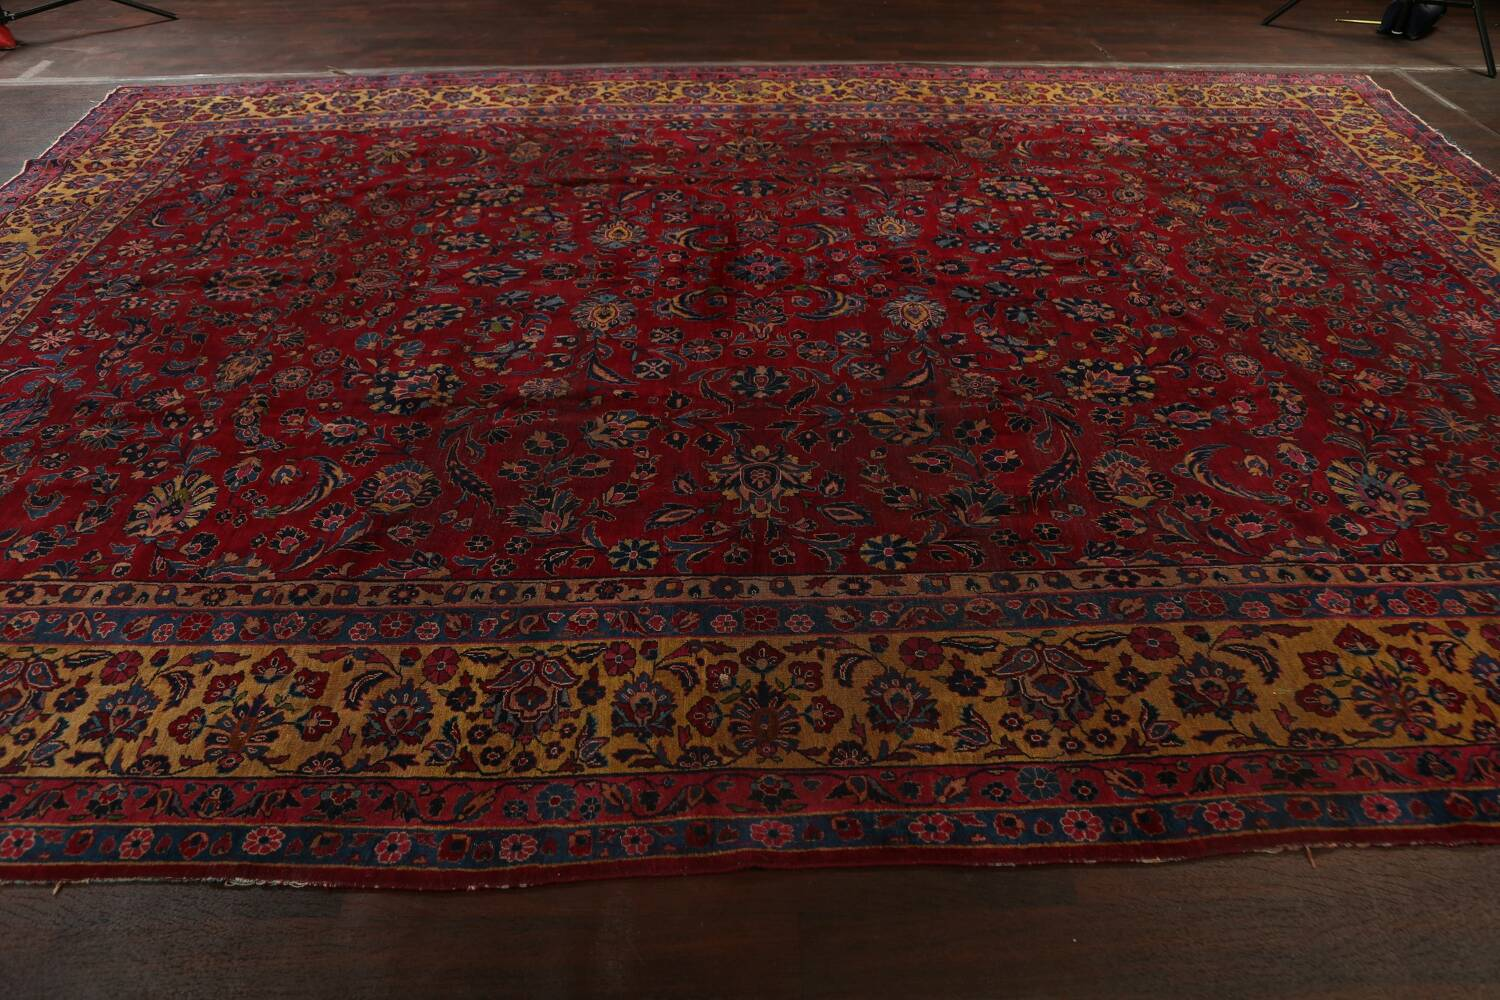 Pre-1900 Antique Vegetable Dye Sarouk Persian Area Rug 11x15 image 15